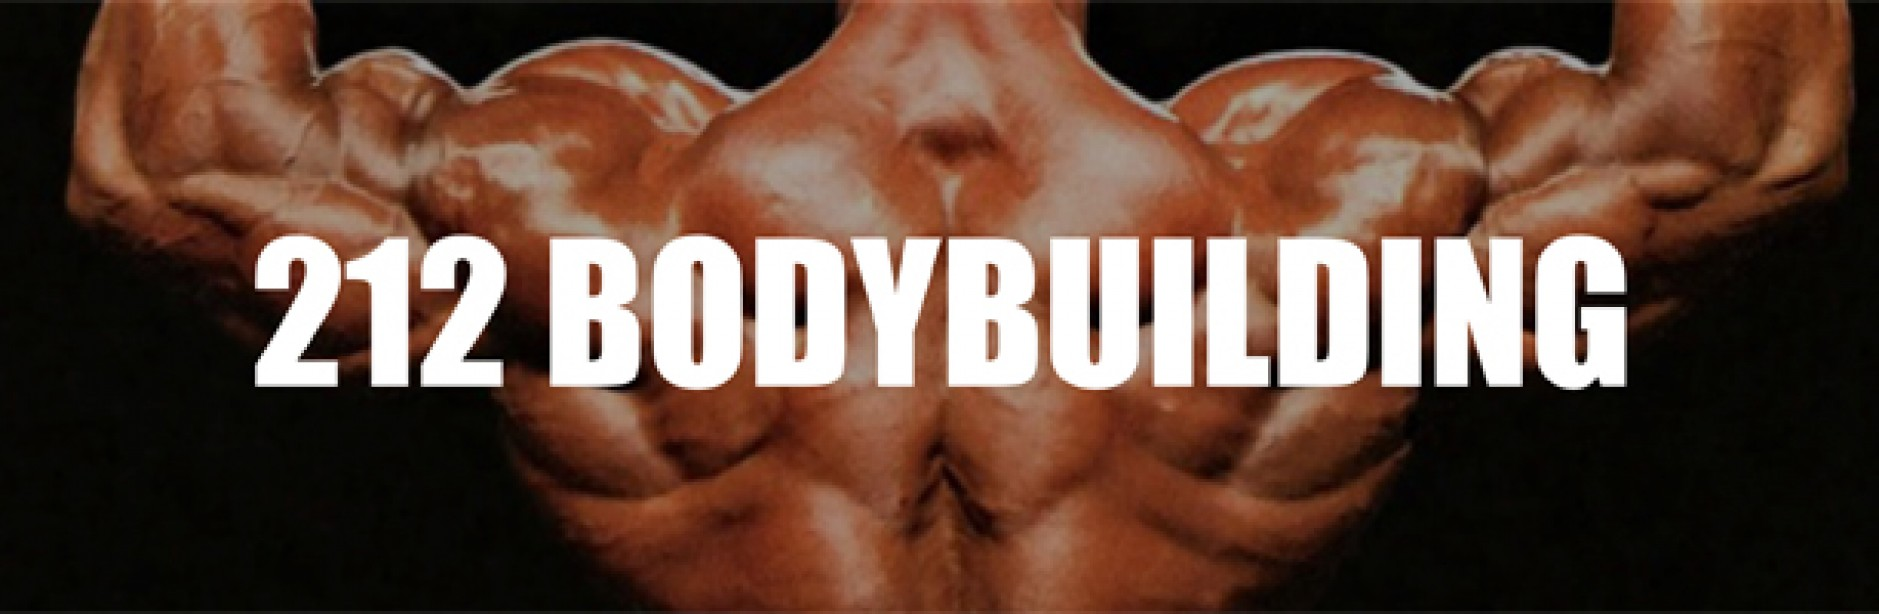 2016 Arnold Classic 212 Bodybuilding Call Out Report